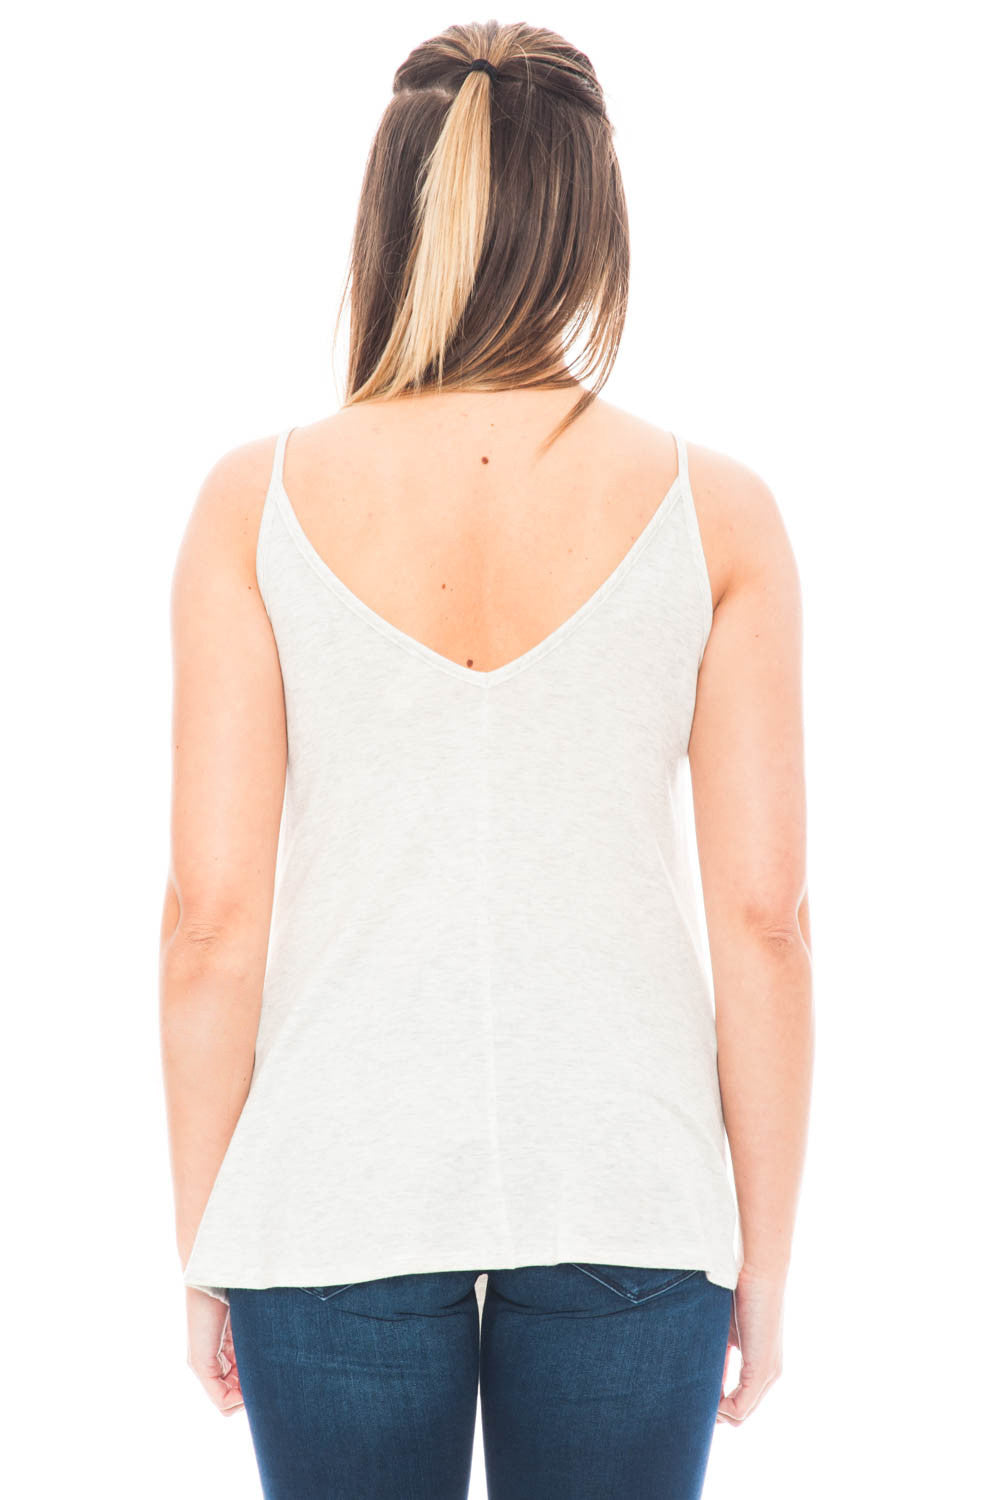 Tank - Tiered Front Top with Tie Side by Paper Crane